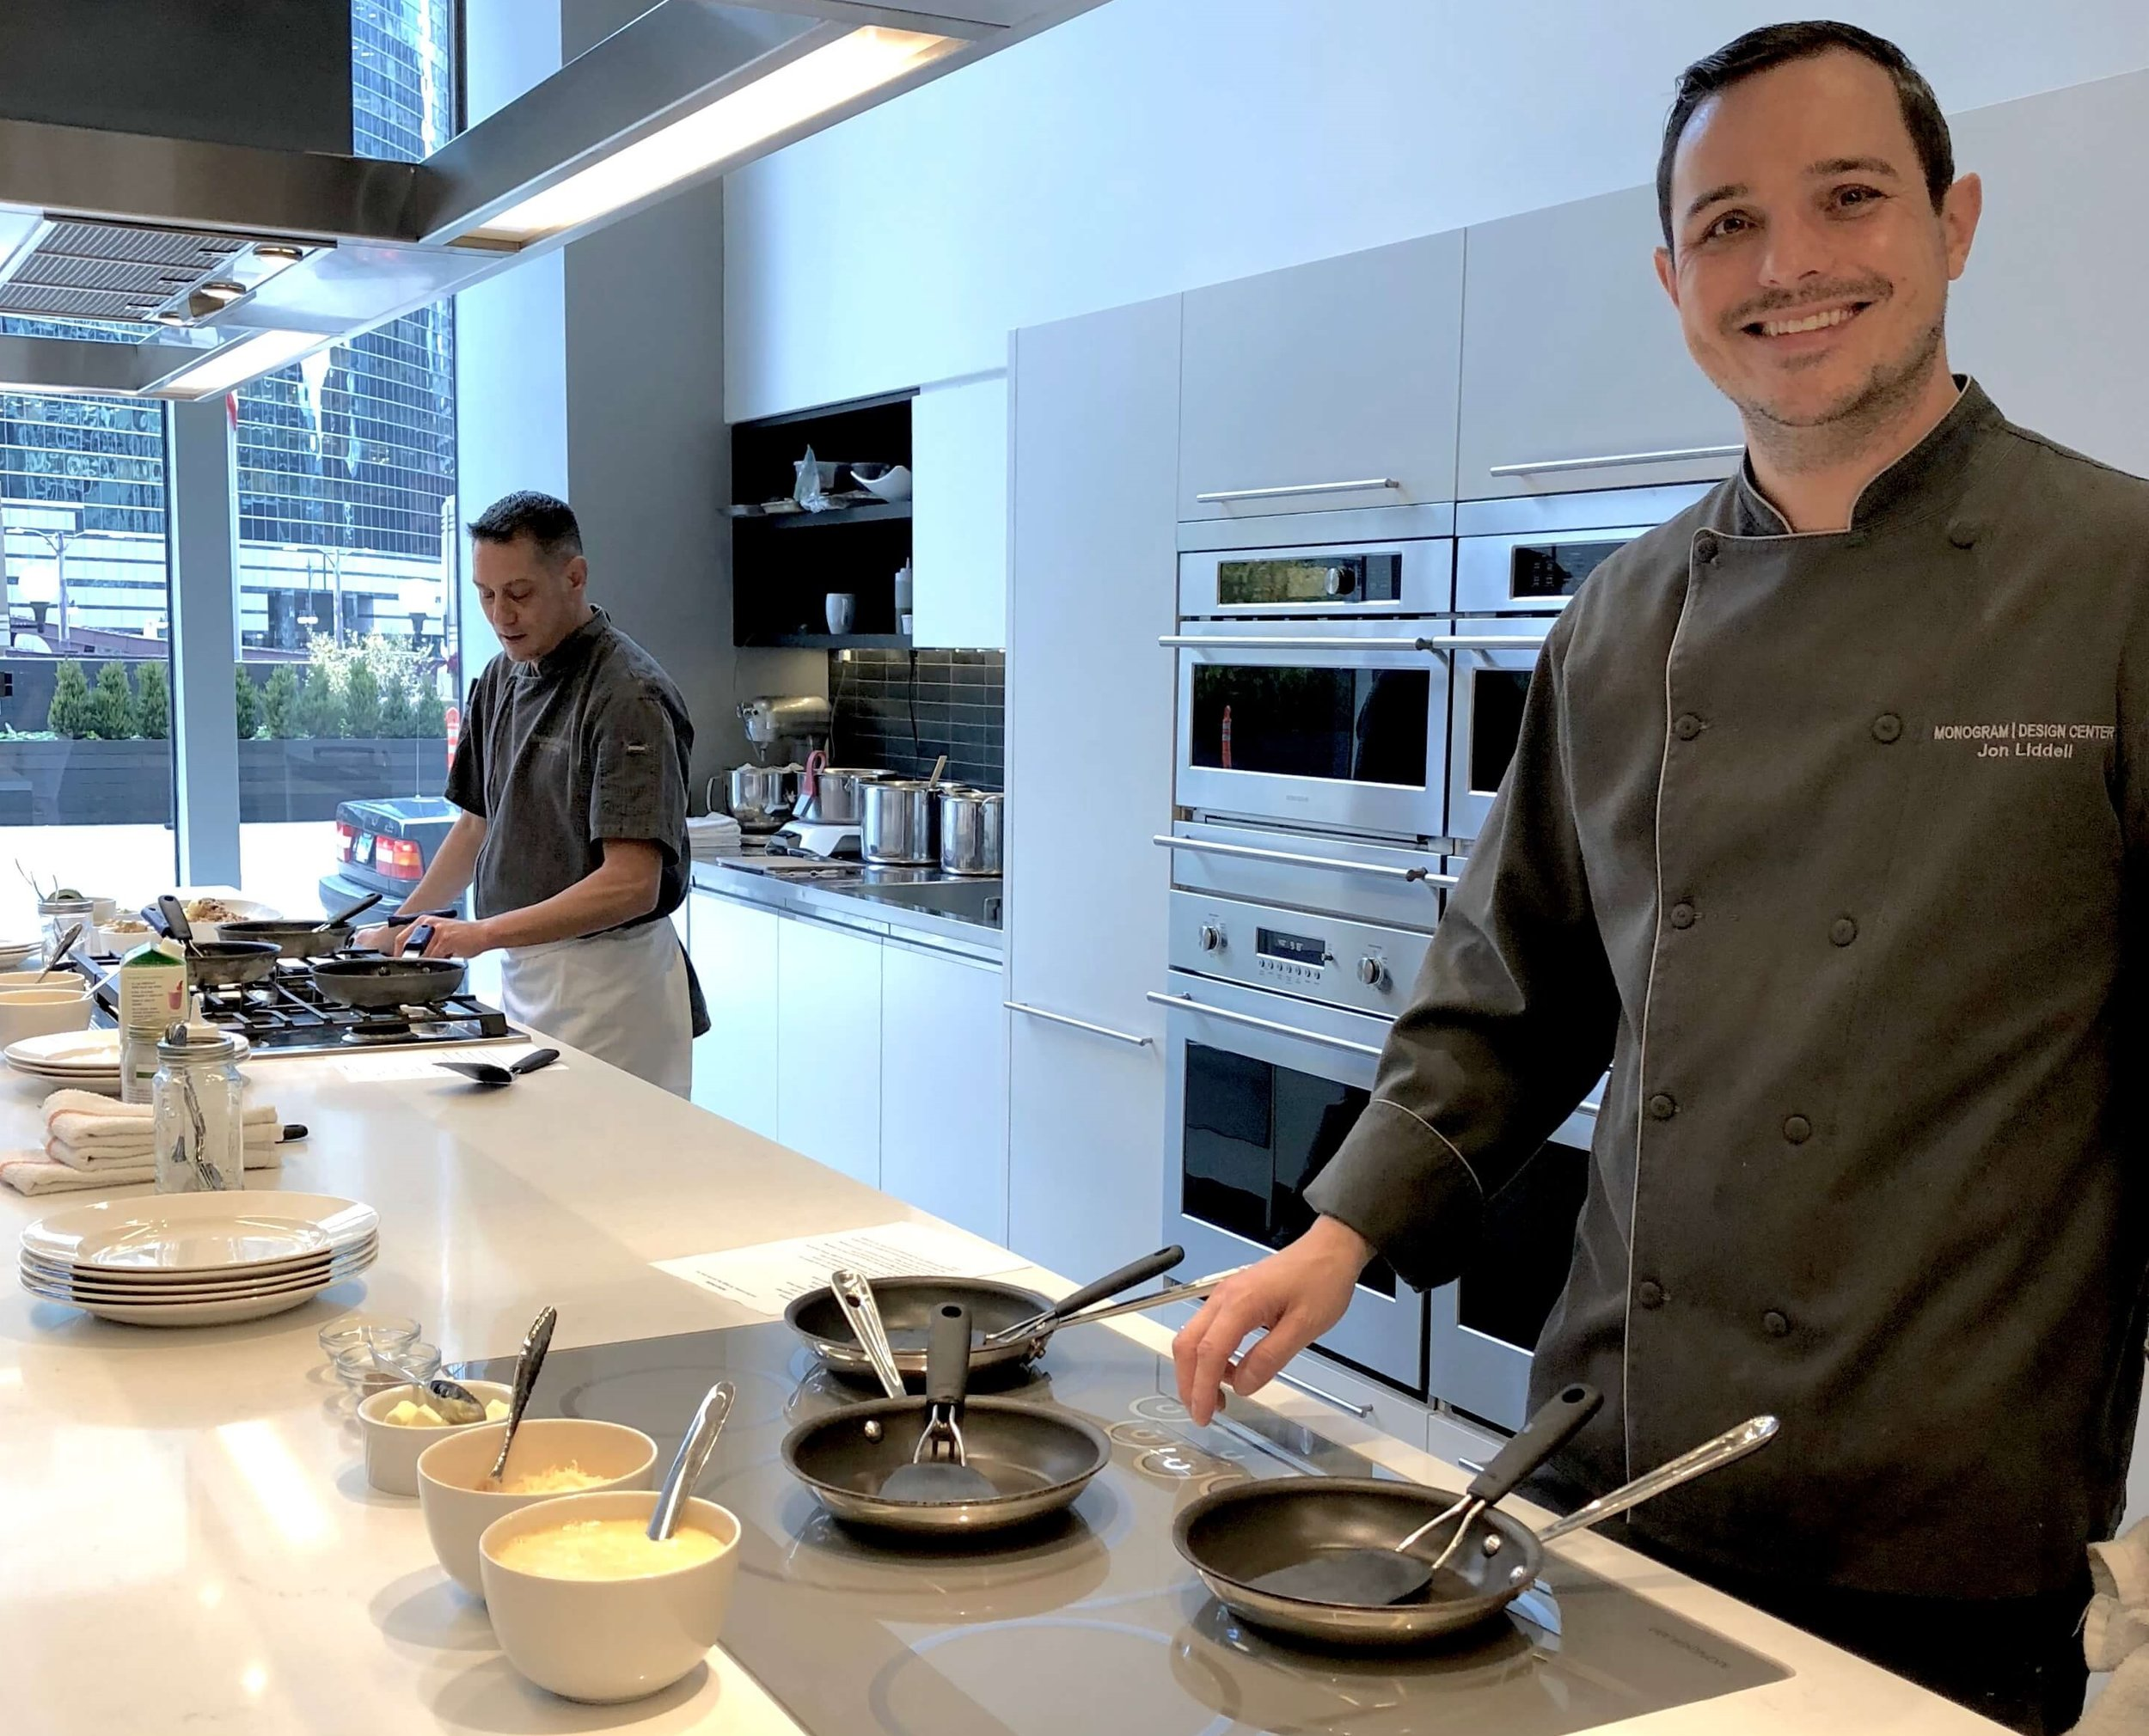 Chef Jon at the Chicago Monogram Appliances showroom, demonstrating how to improve your cooking skills using these luxury kitchen appliances.